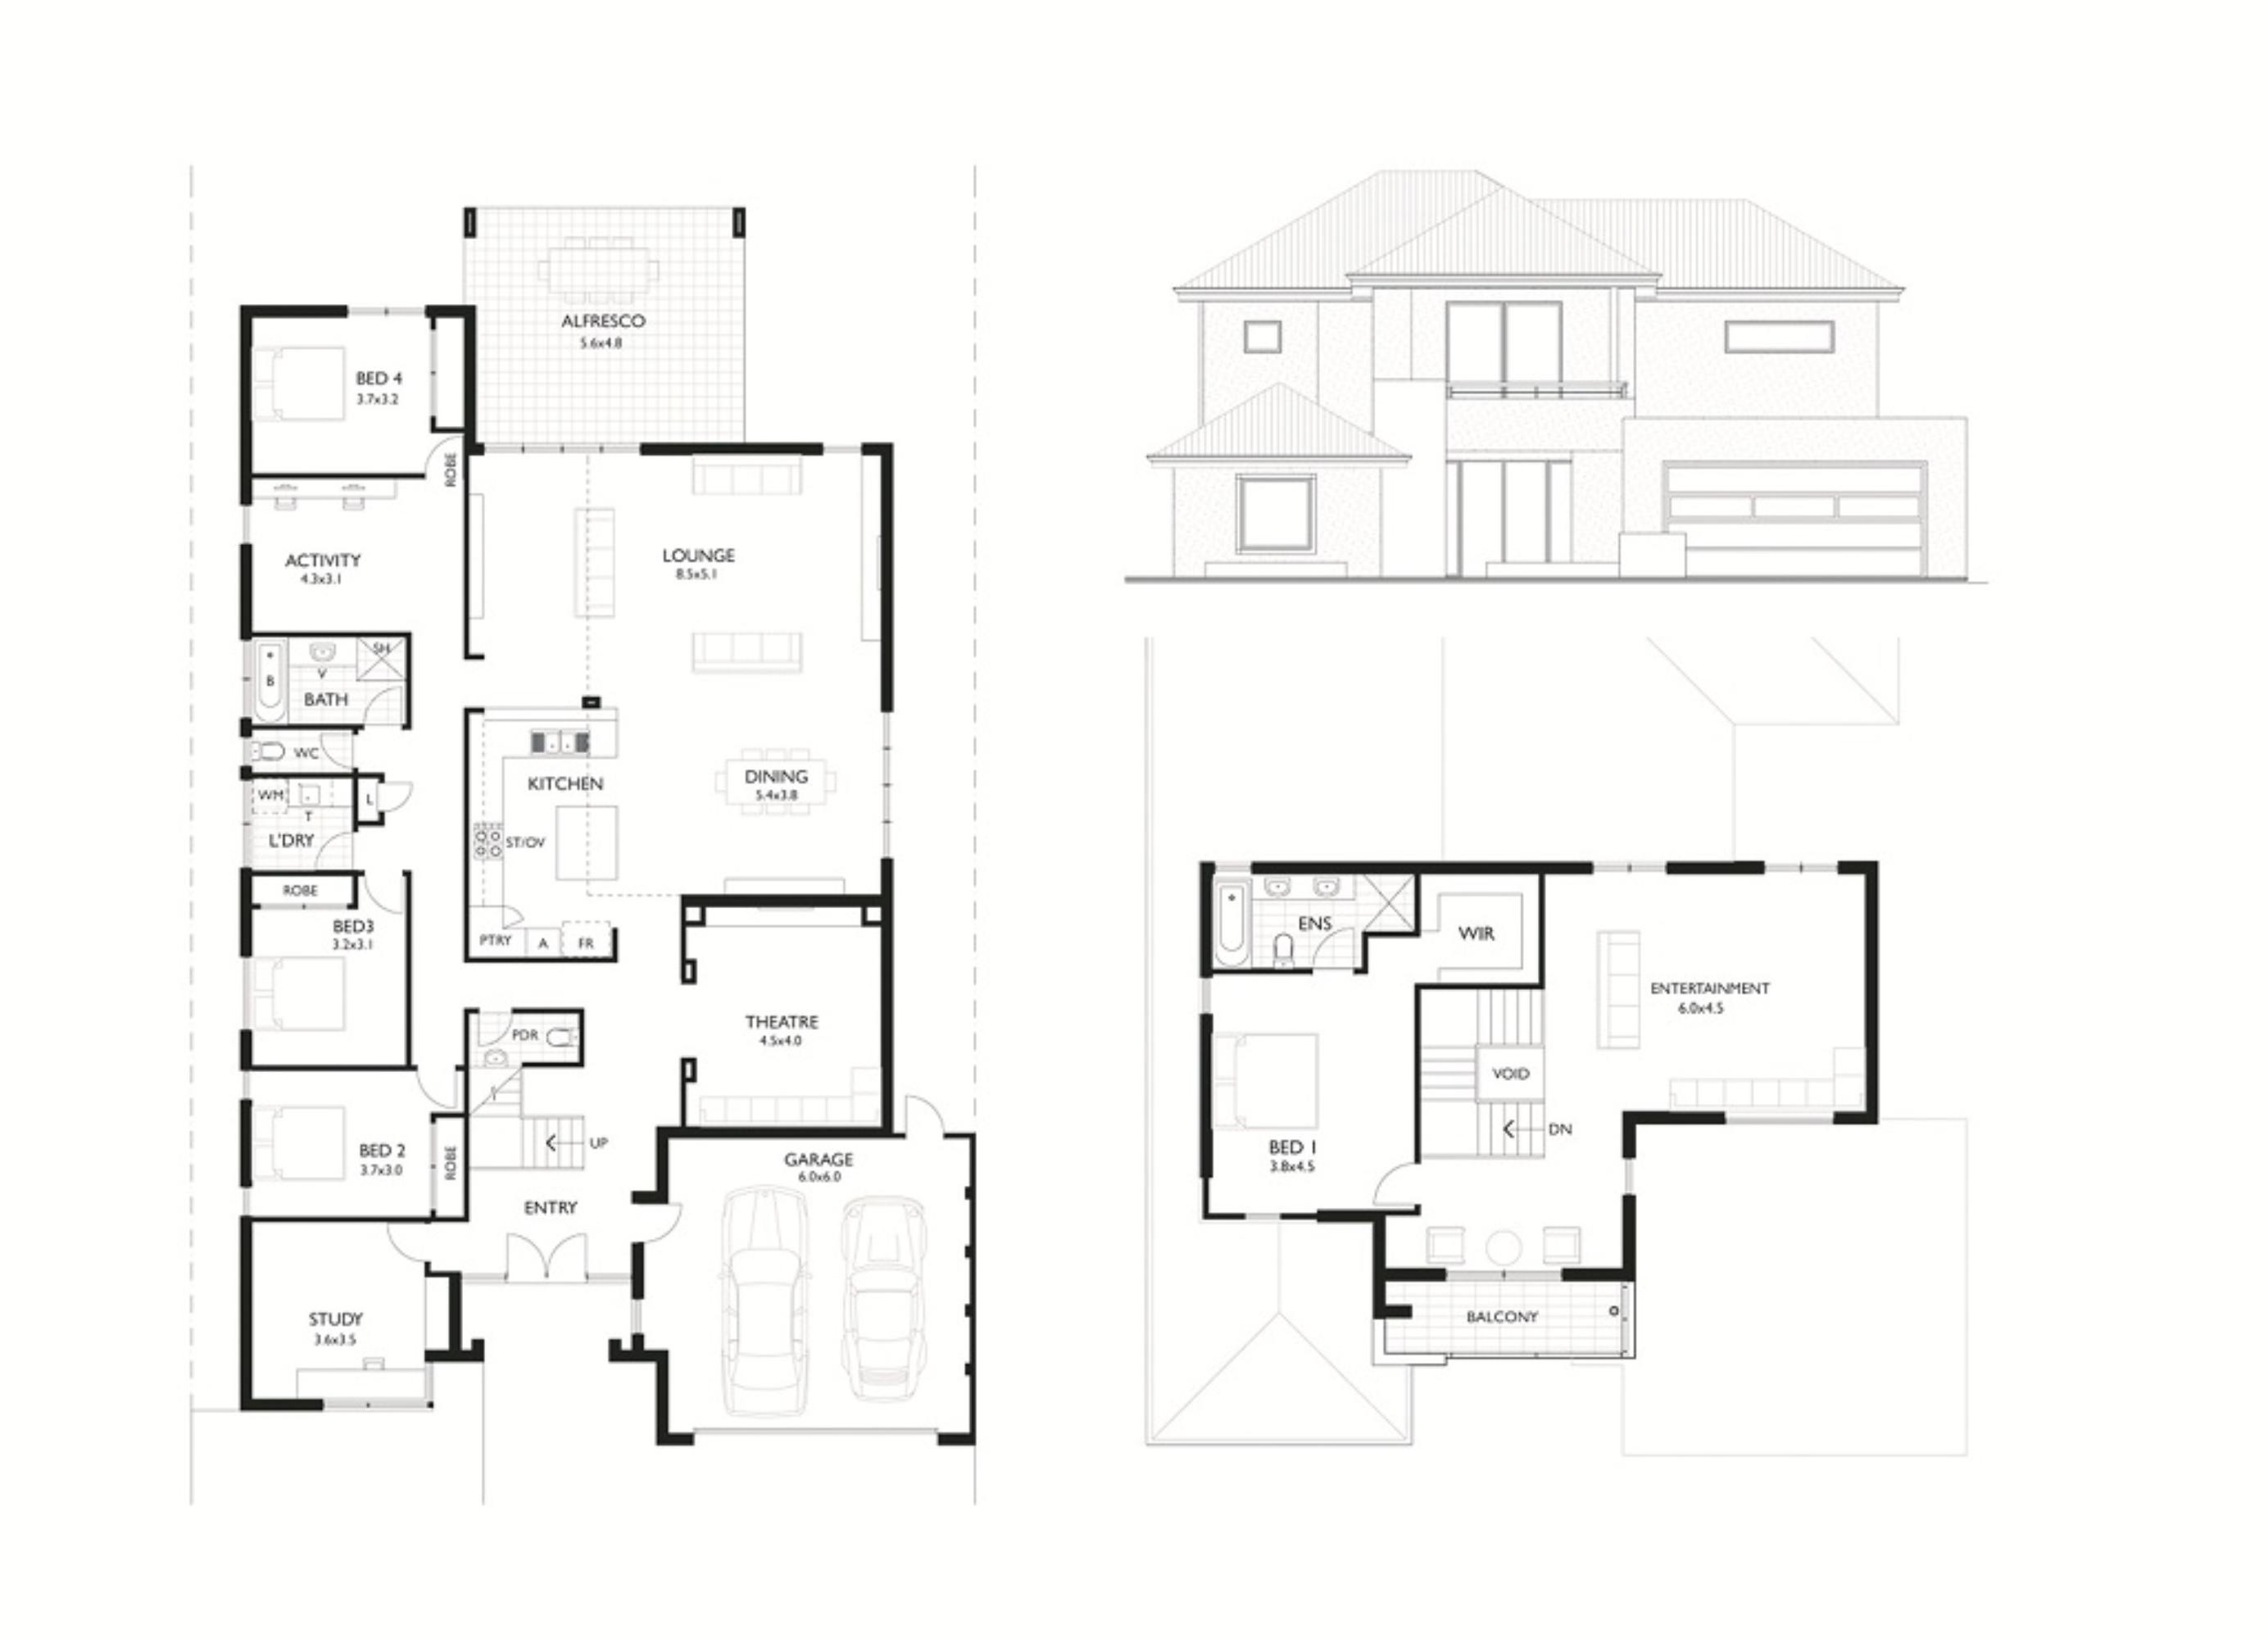 Escalade floor plan